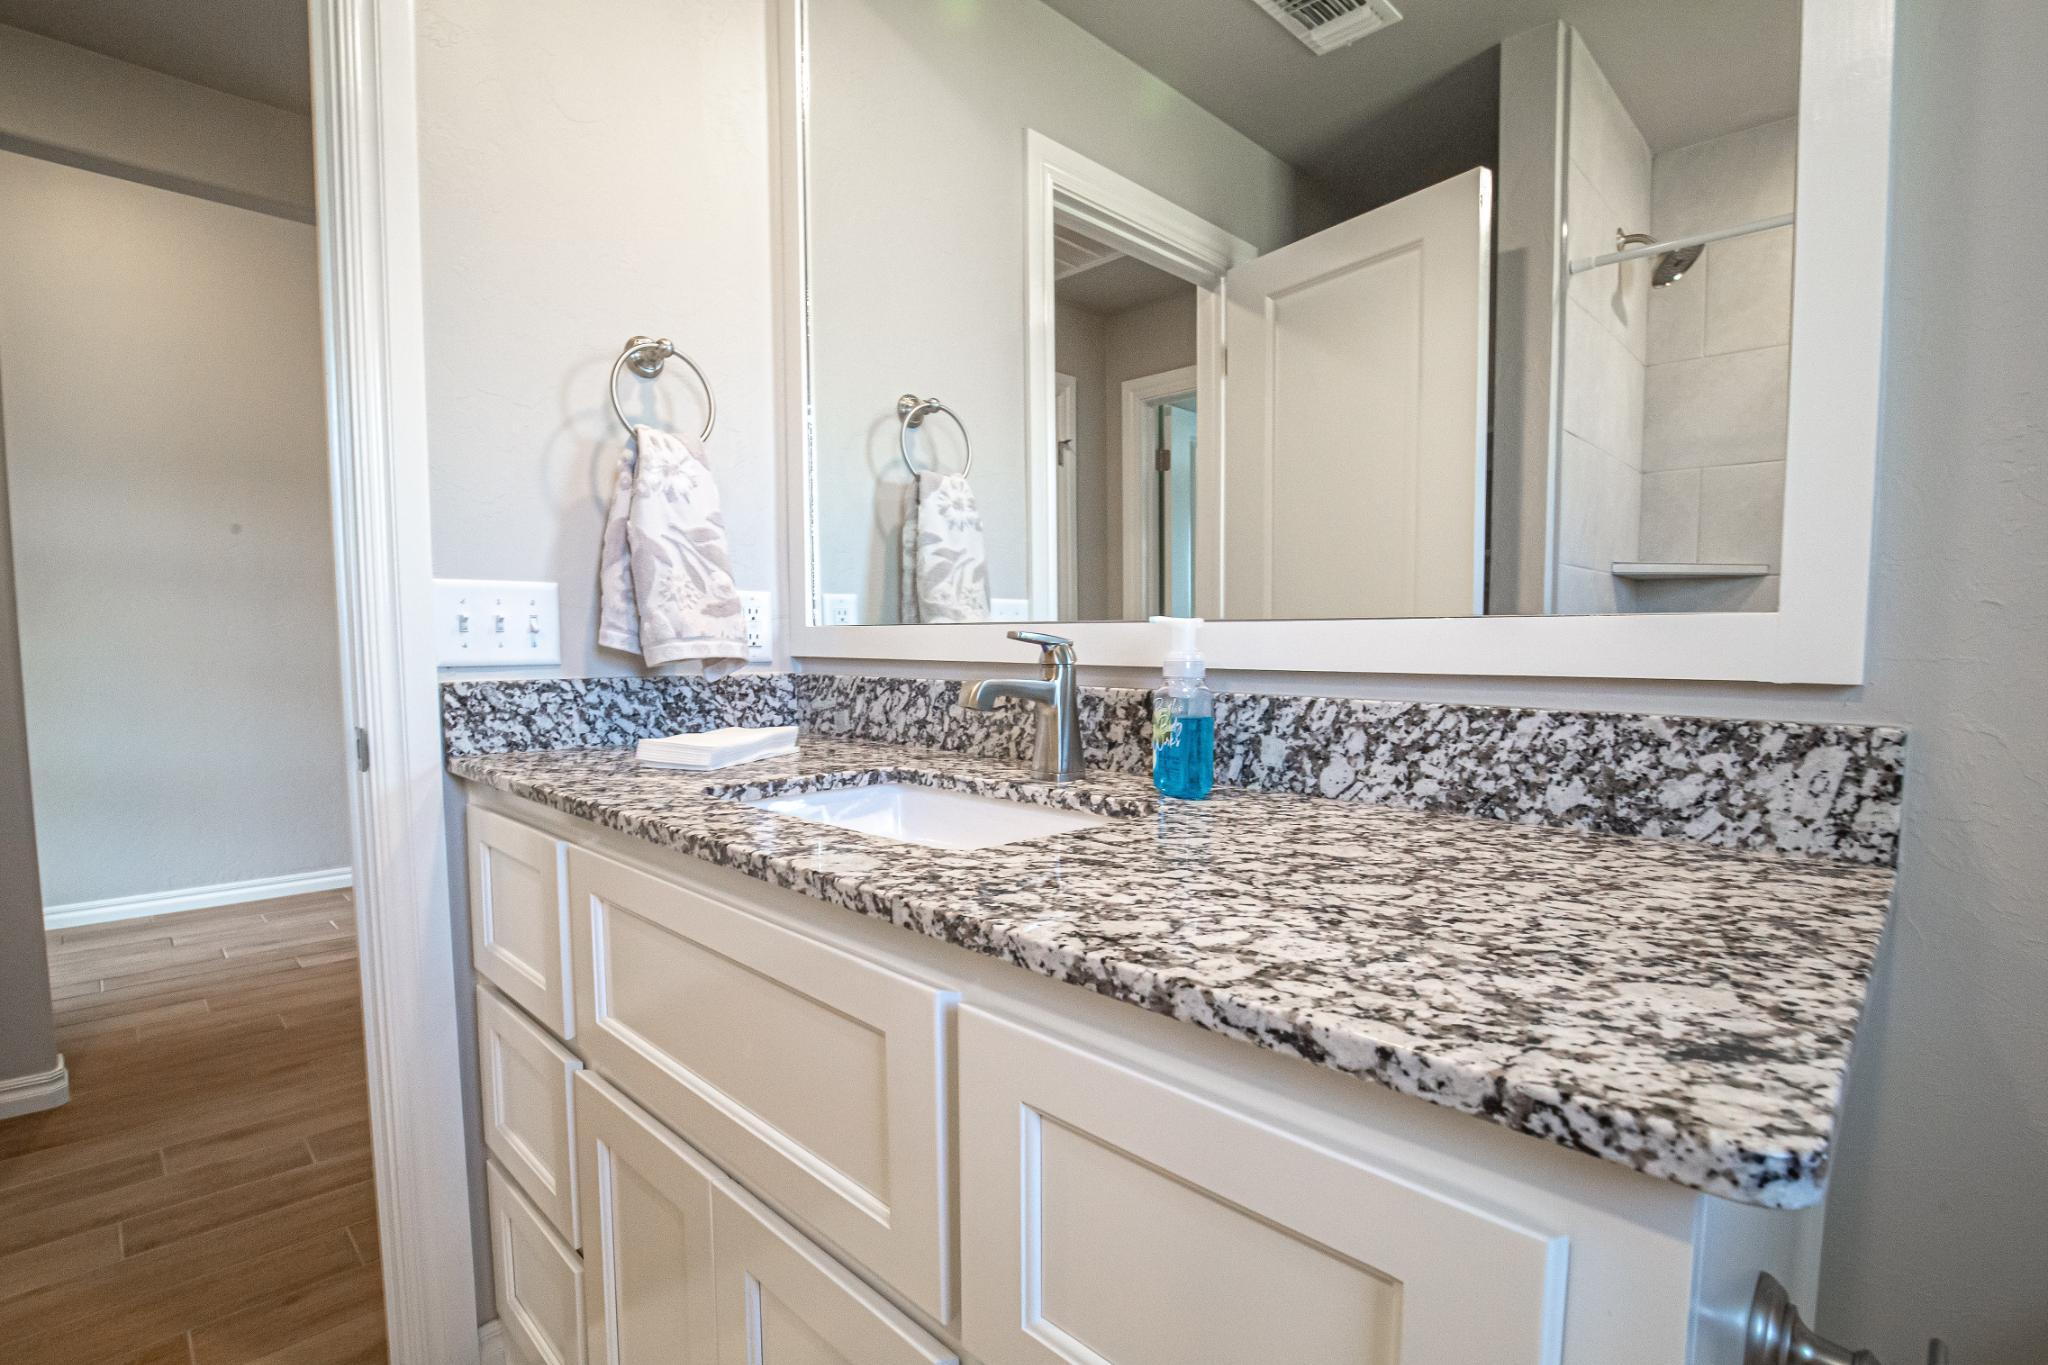 Bathroom featured in the Kamber By Homes By Taber in Oklahoma City, OK